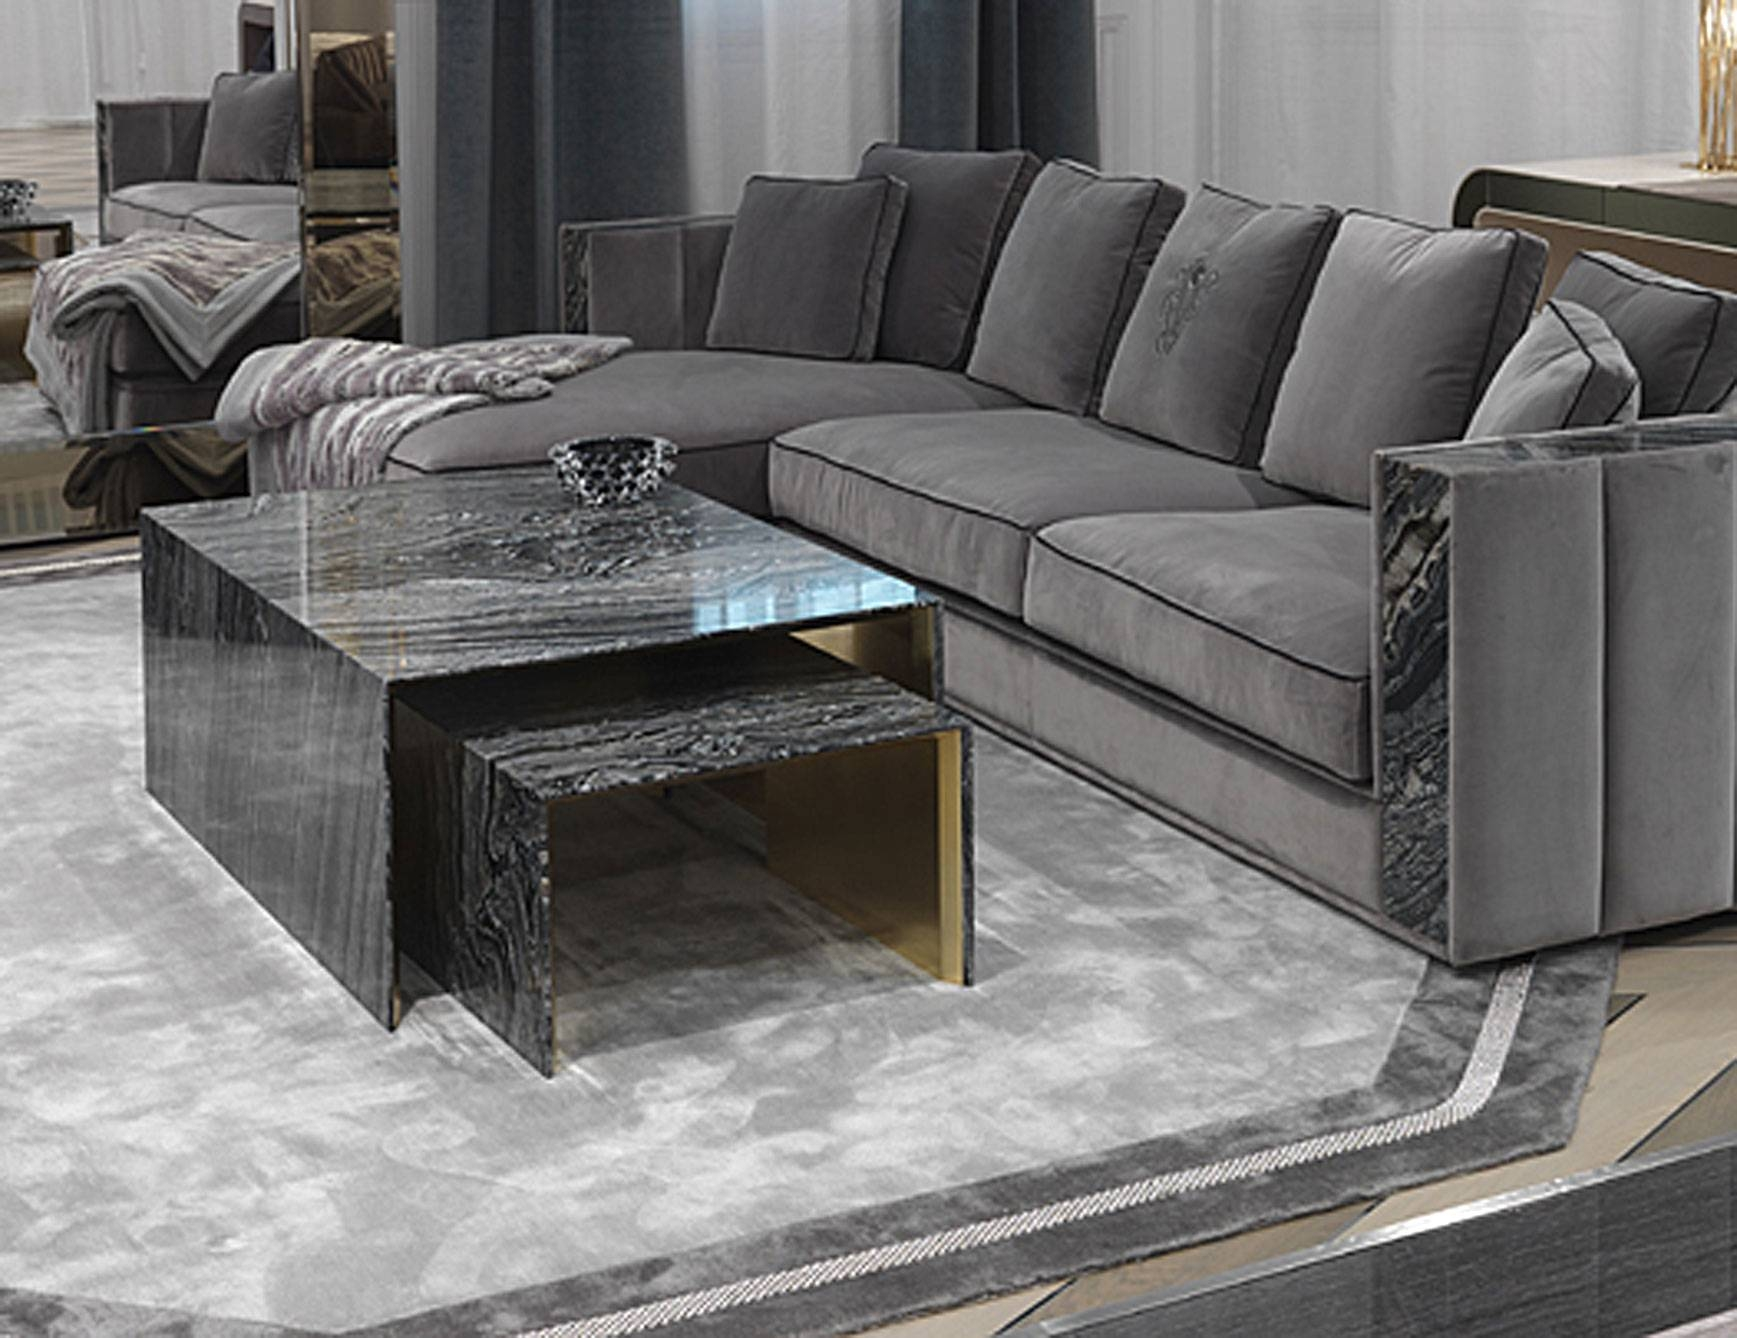 High End Coffee Tables Nice Coffee Table Sets On Glass Top Coffee In Nice Coffee Tables (View 13 of 15)